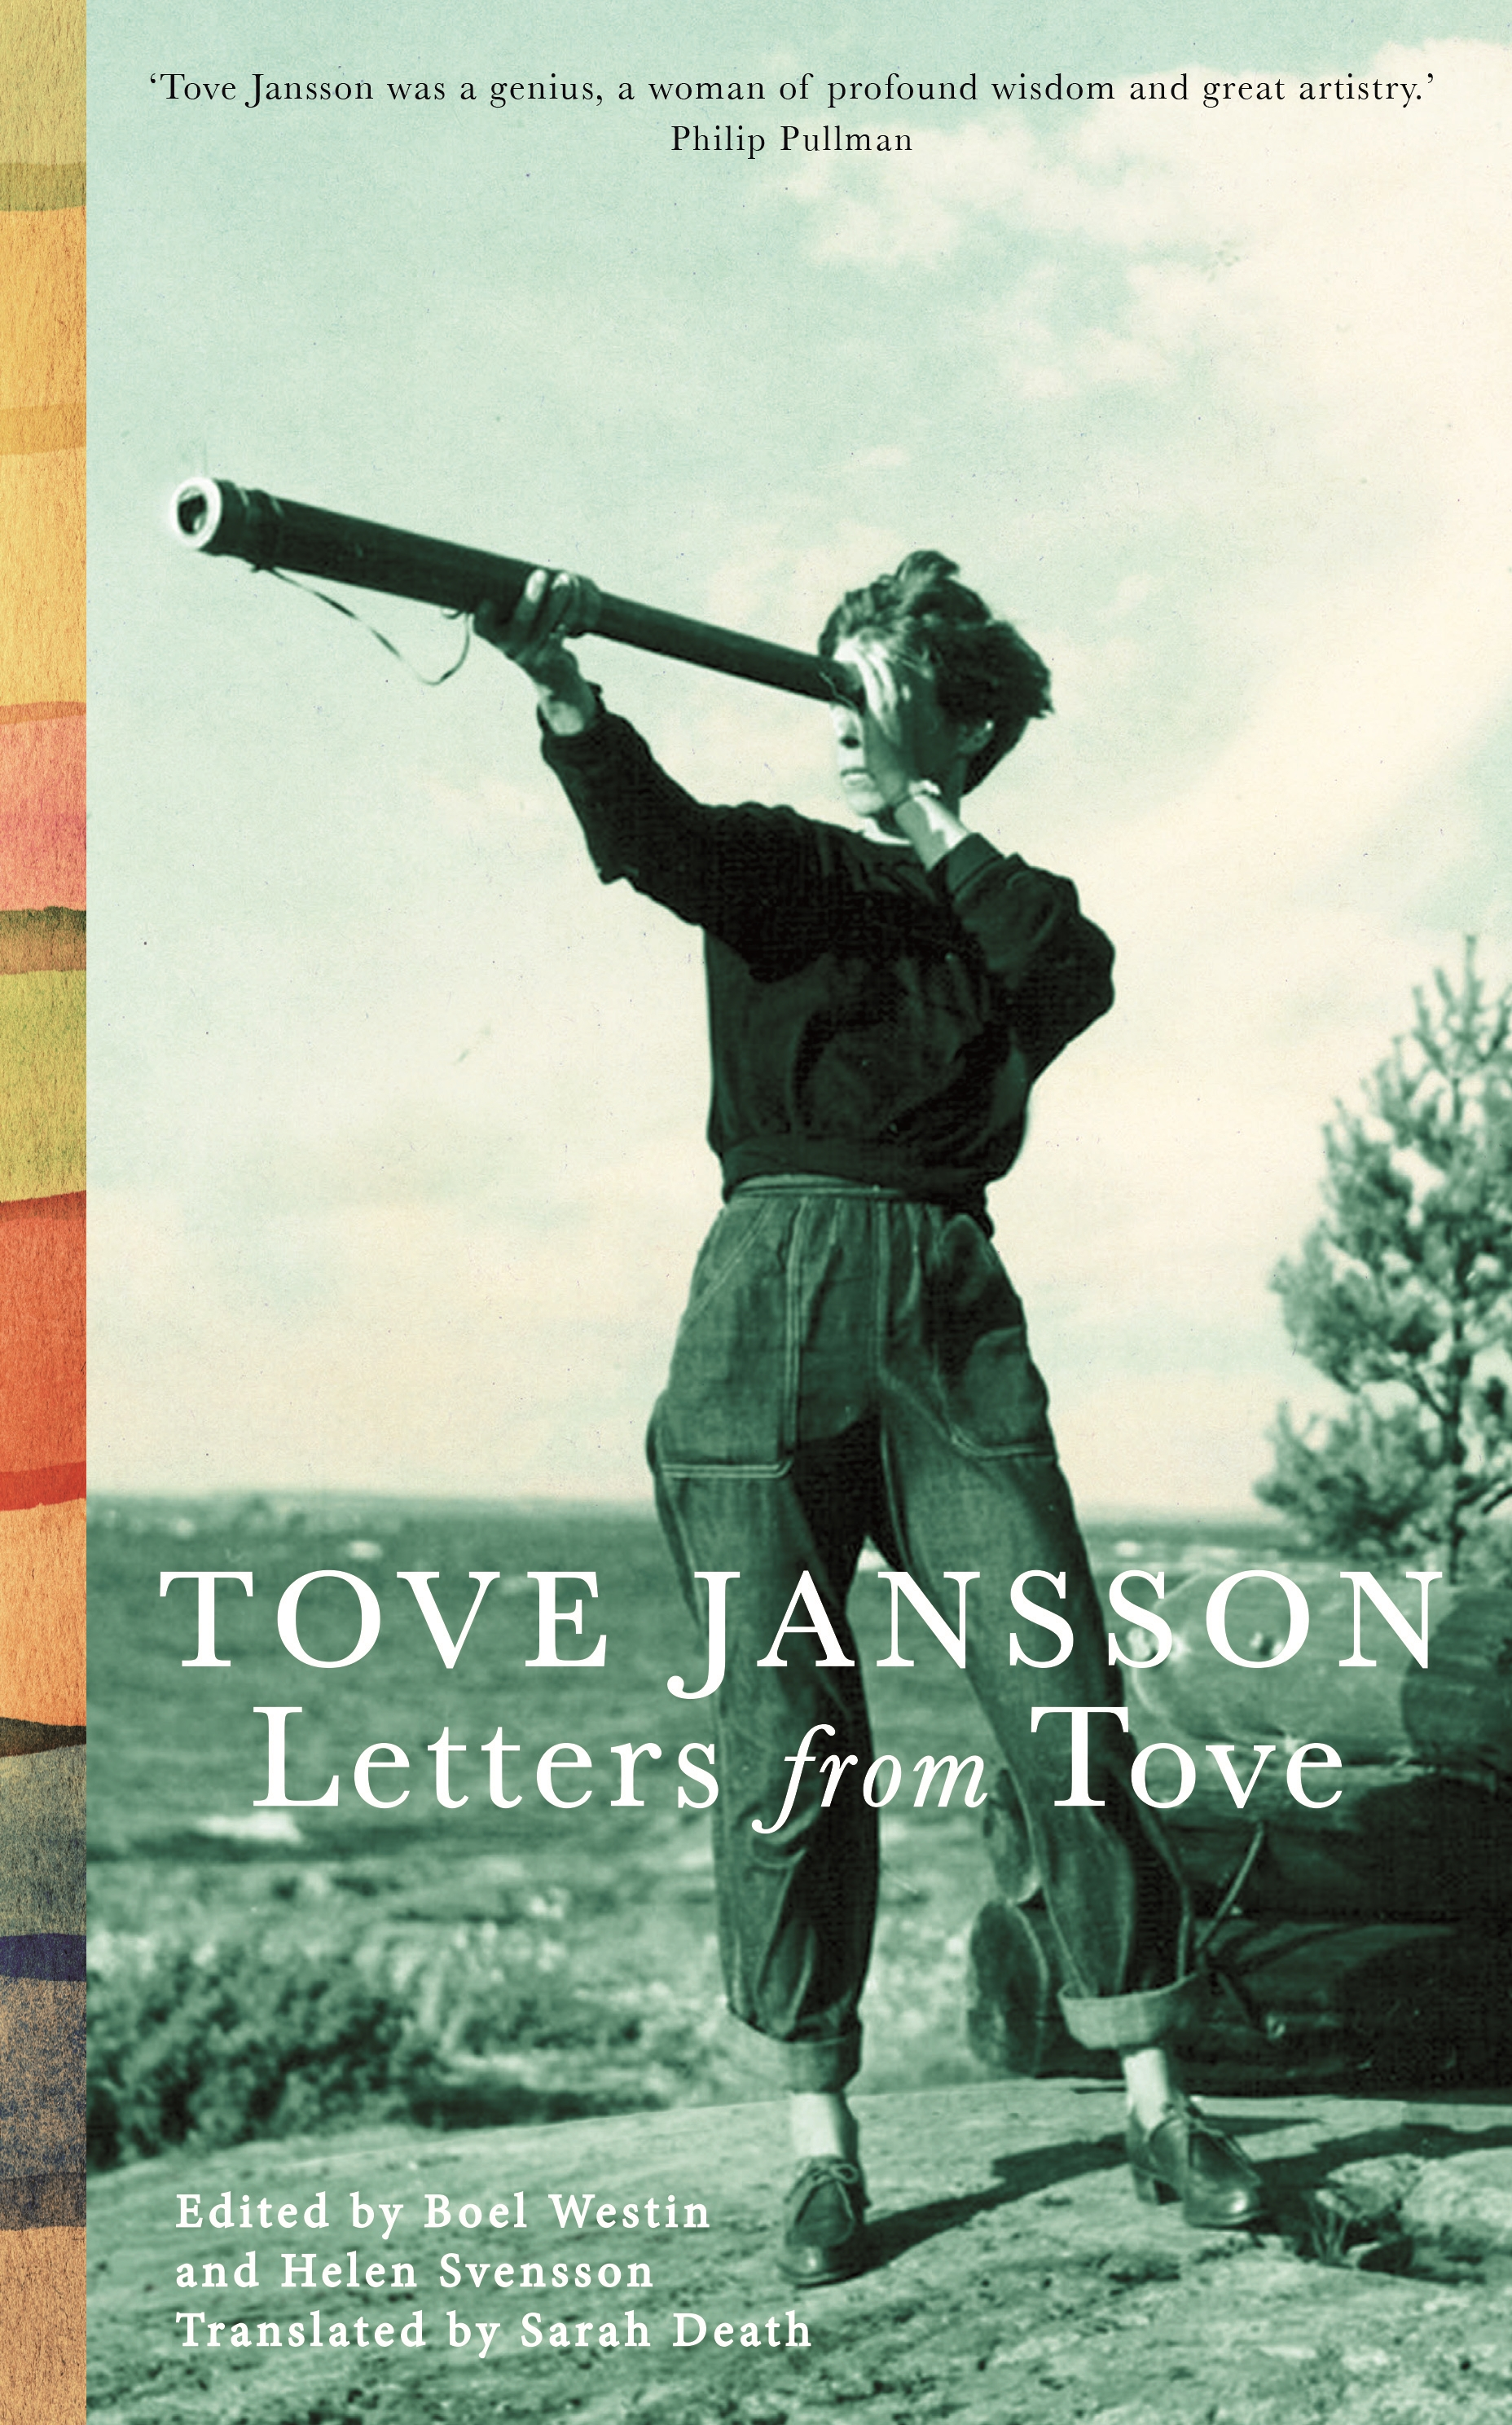 Tove Jansson Letters from Tove Sort of Books.jpg